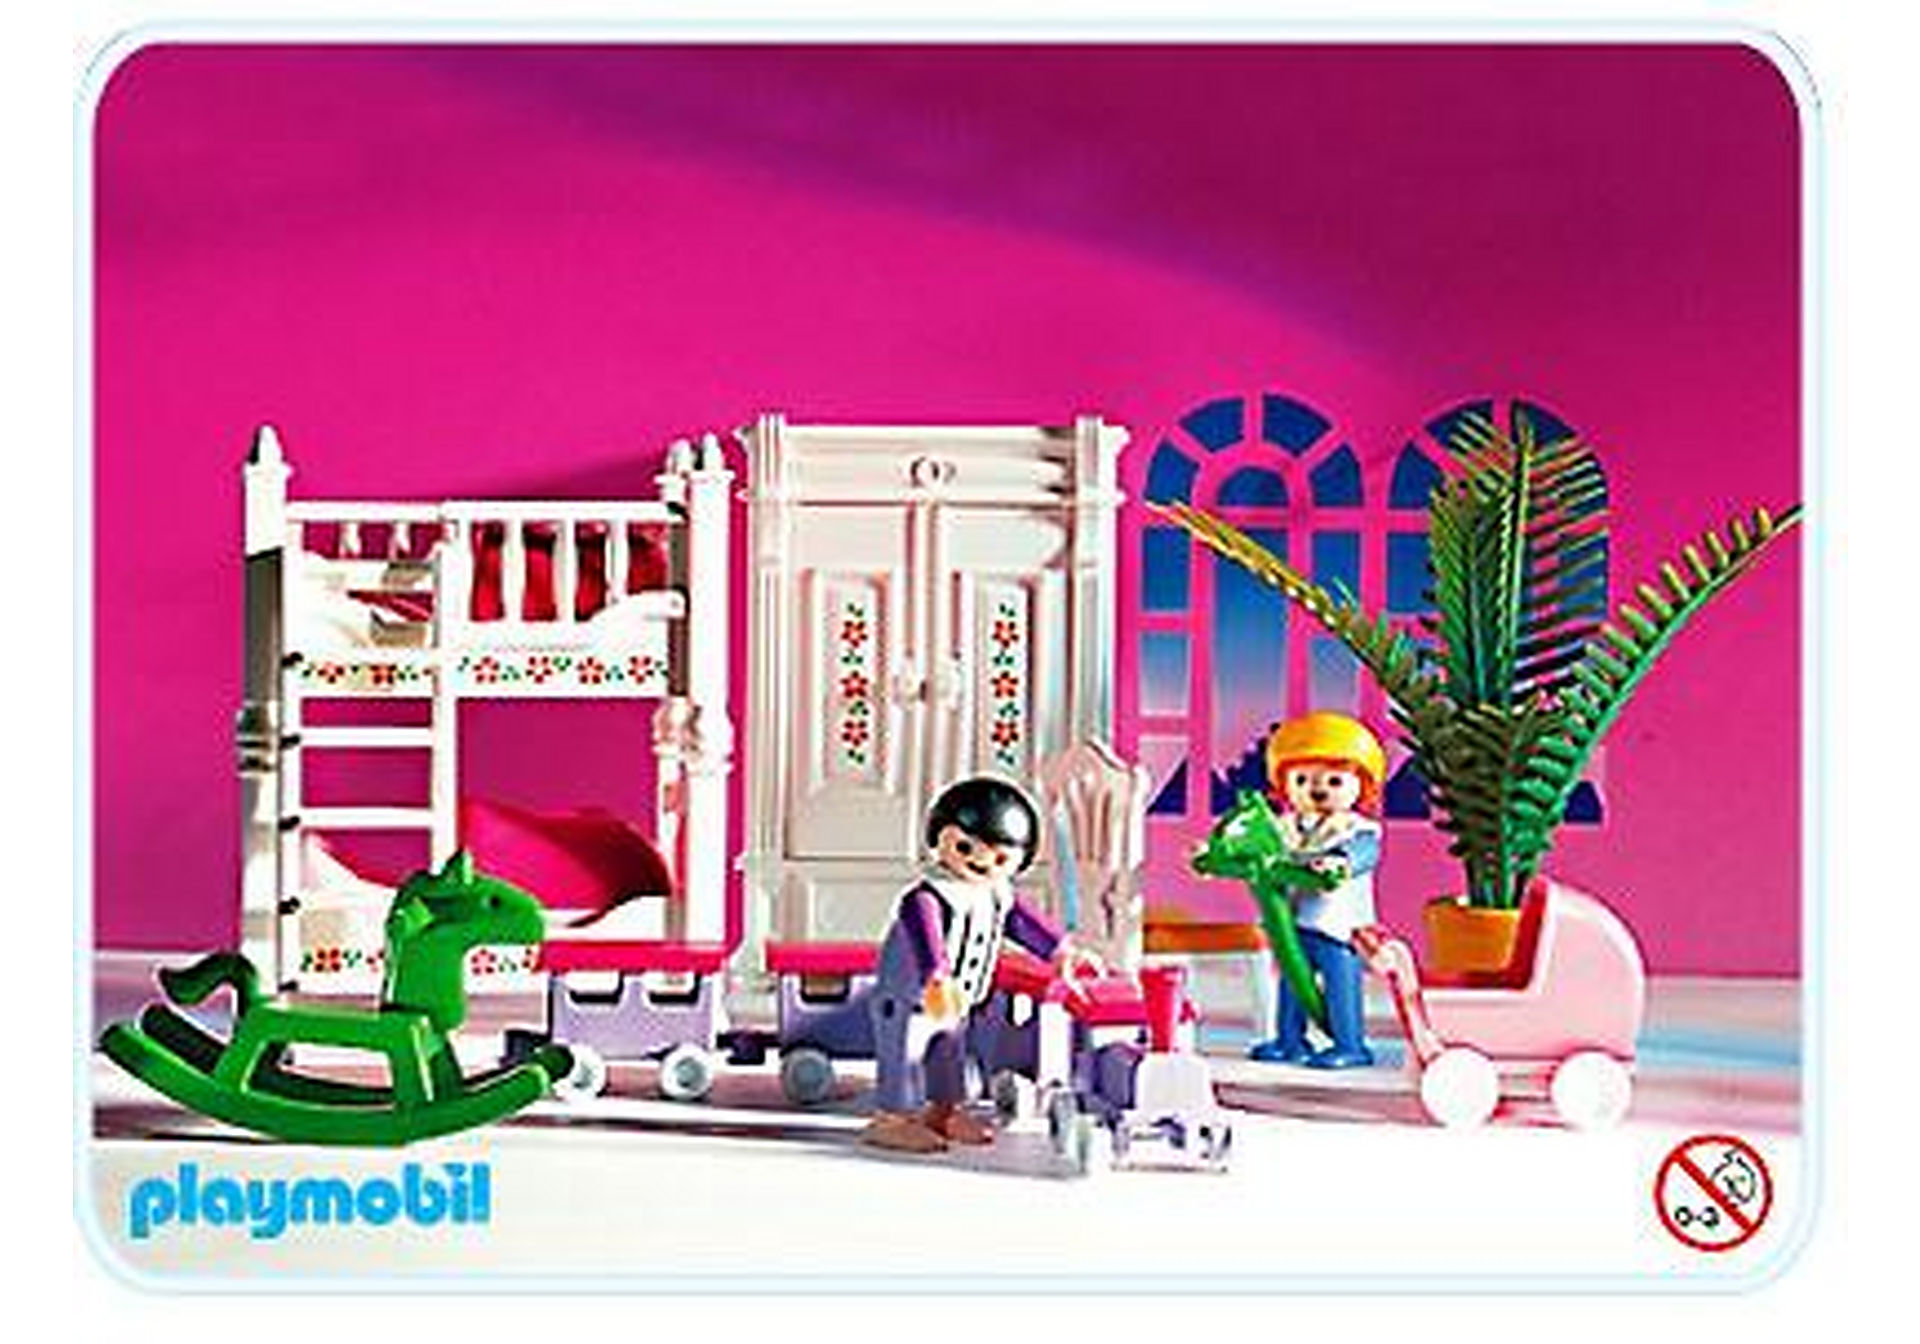 http://media.playmobil.com/i/playmobil/5312-A_product_detail/Kinderzimmer